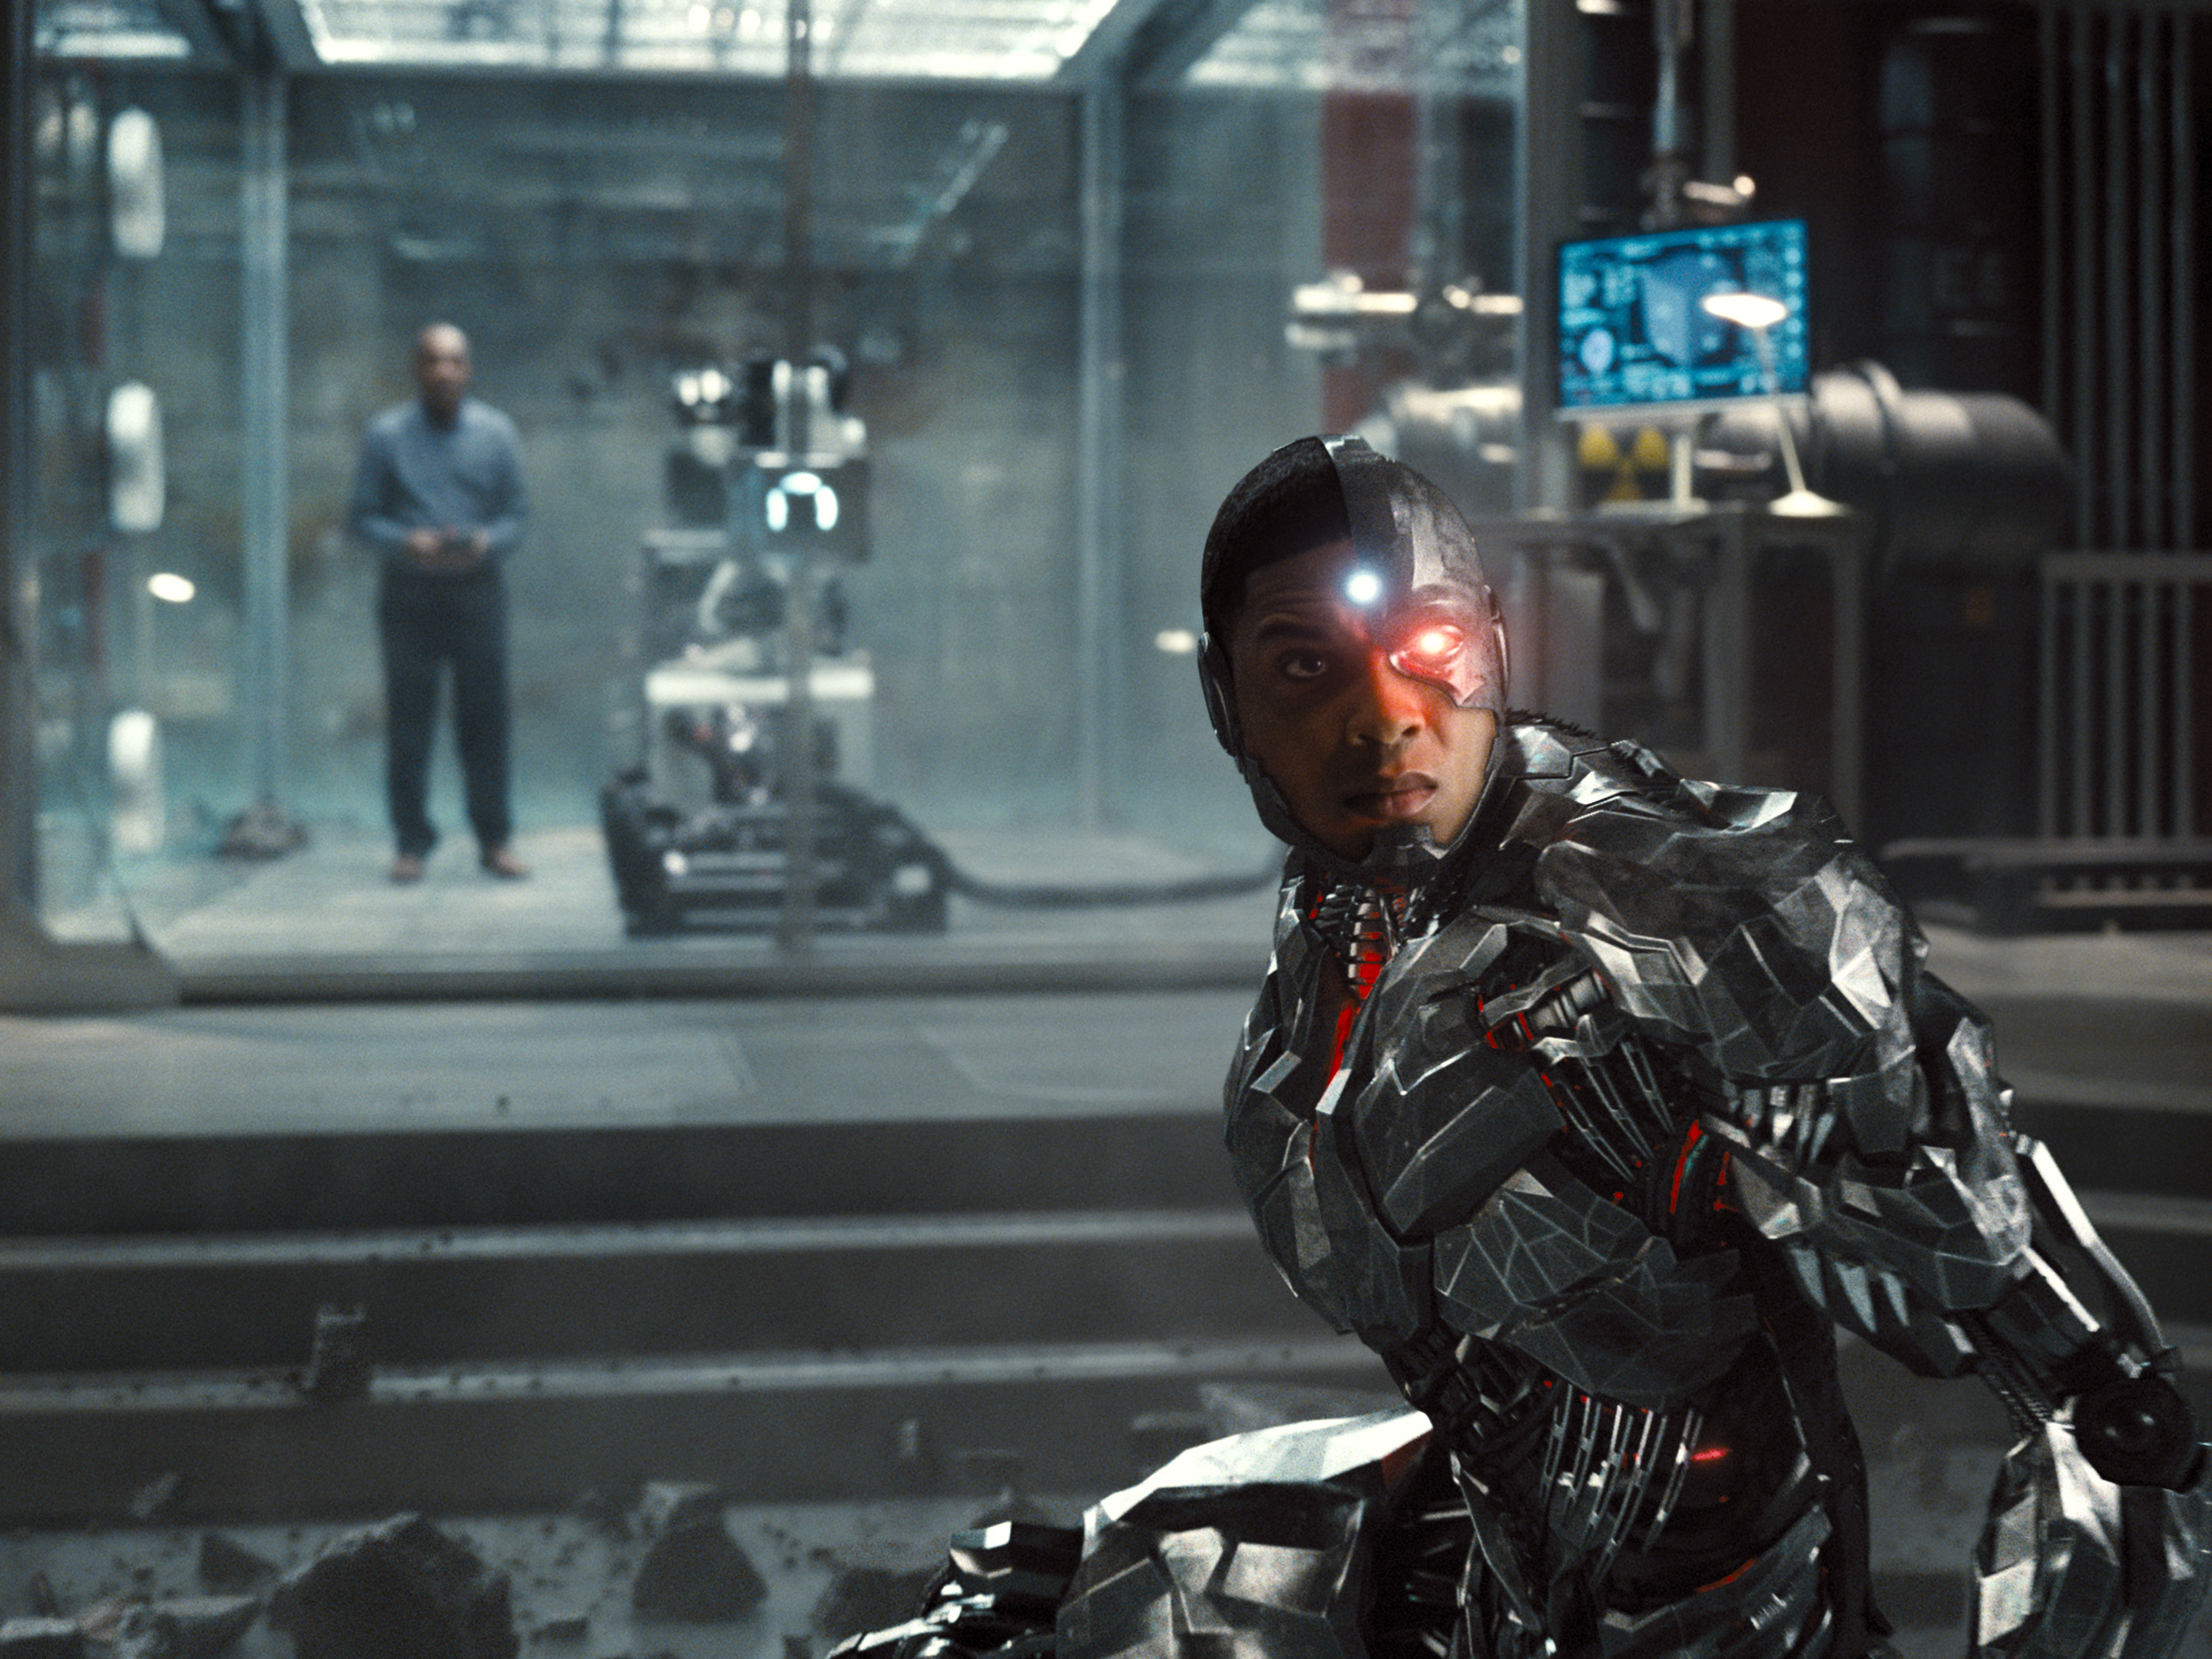 Cyborg in front of a damaged lab